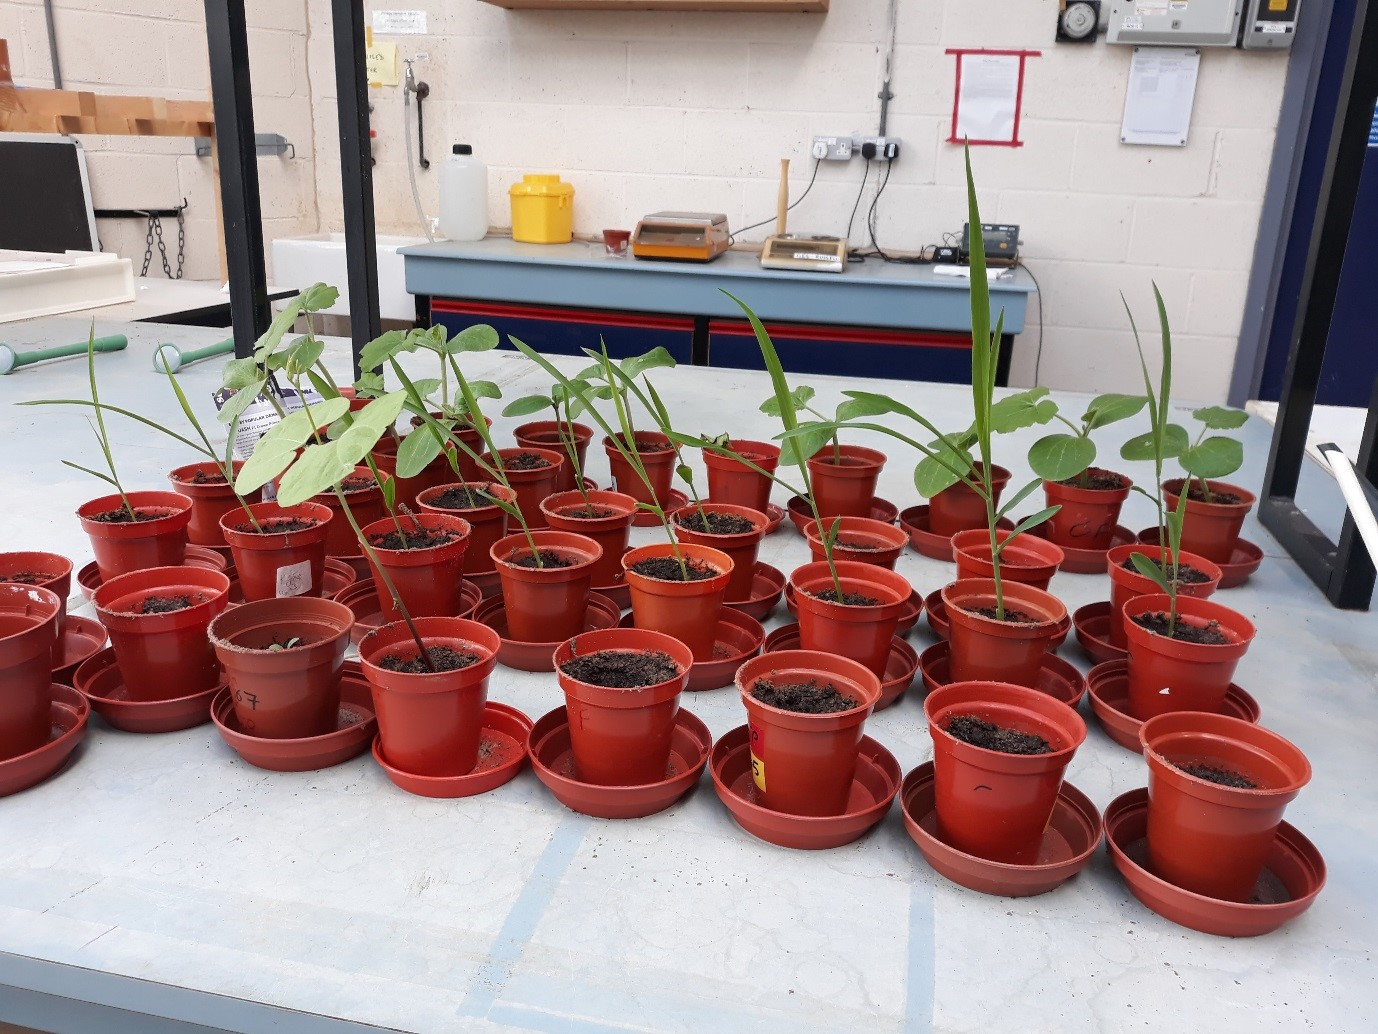 Plants sitting in pots in three rows on a white table. They have been germinating in the pots.